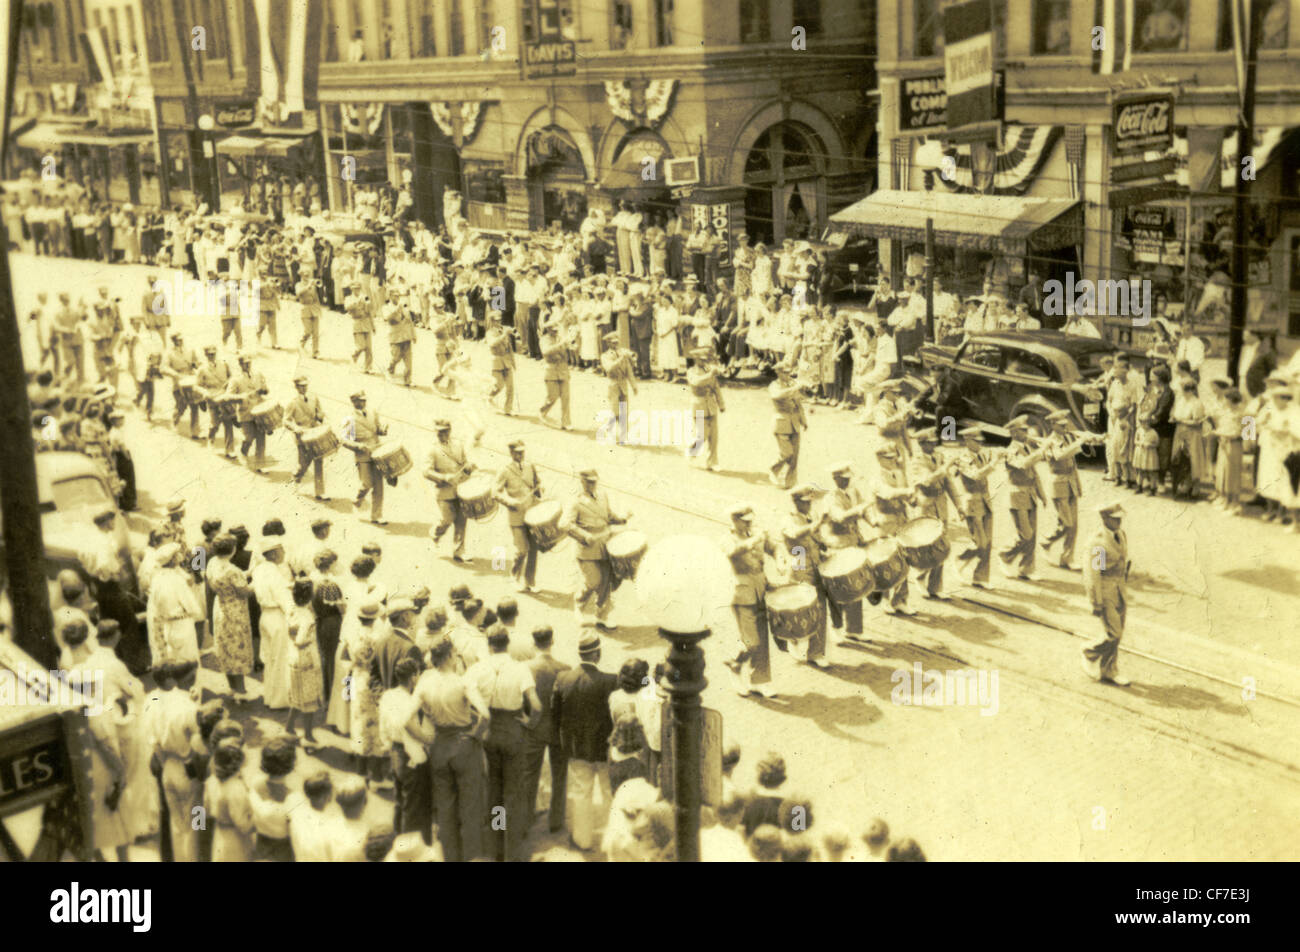 Members of the American Legion band march in downtown Peoria, Illinois in 1934 during the National Convention. parade - Stock Image